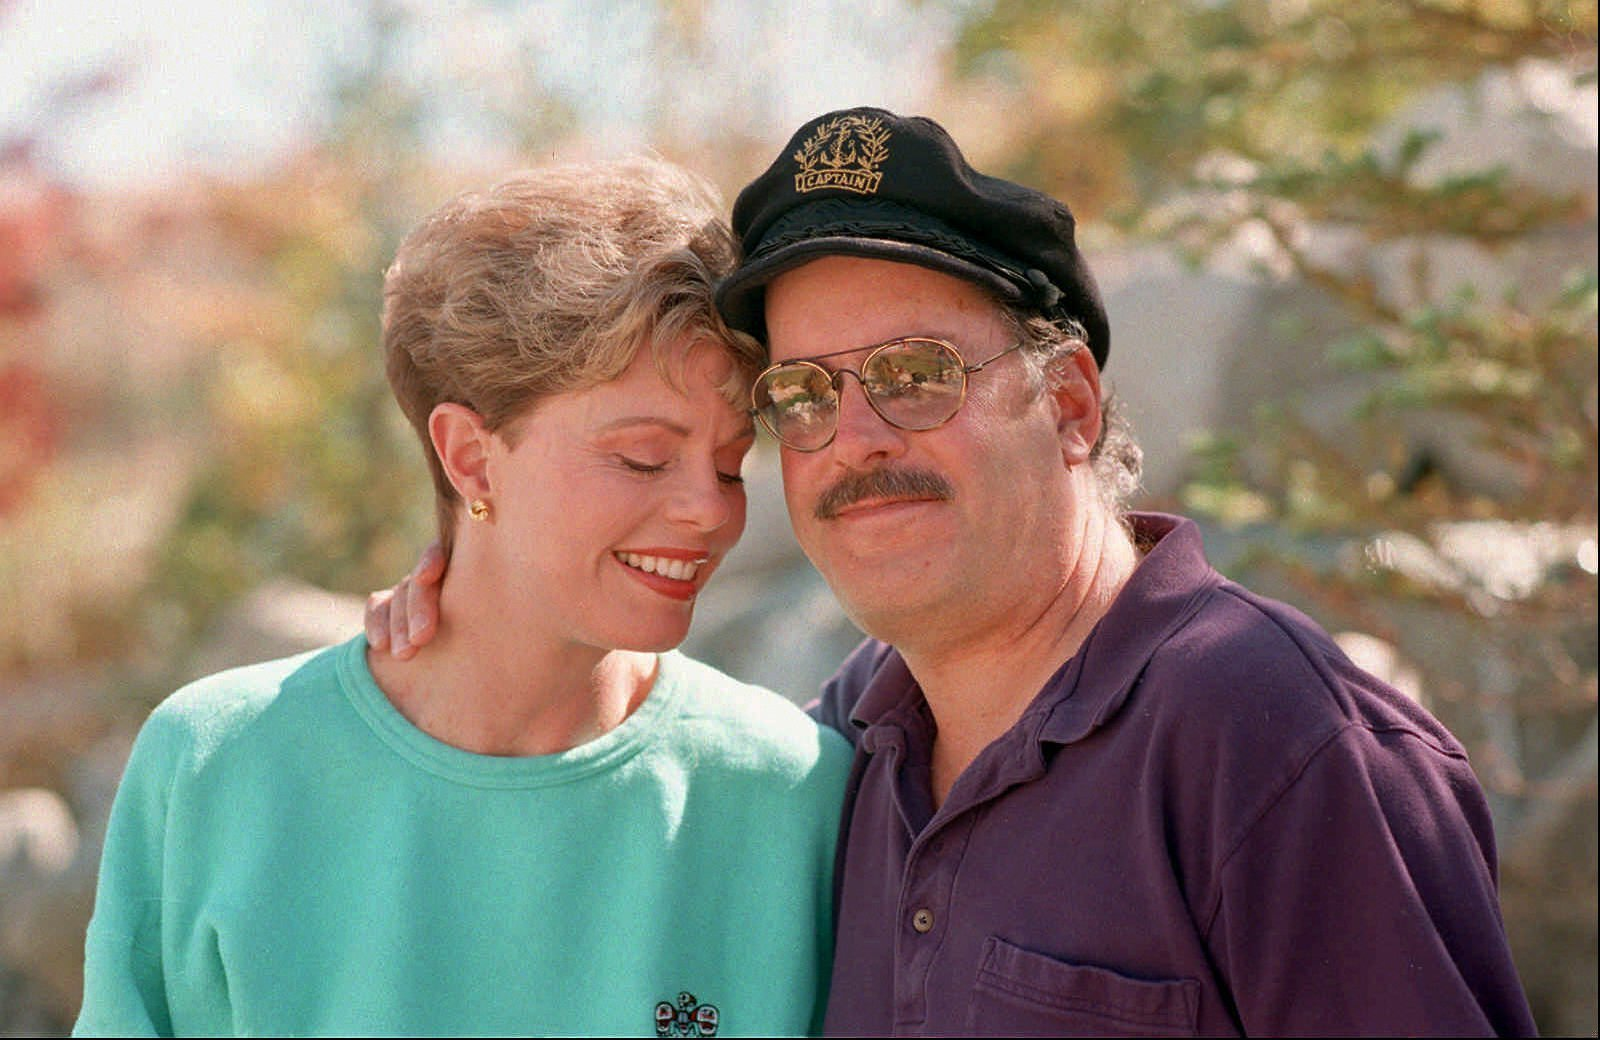 This Oct. 25, 1995 file photo shows Toni Tennille, left, and Daryl Dragon, the singing duo The Captain and Tennille, posing during an interview in at their home in Washoe Valley, south of Reno, Nev.